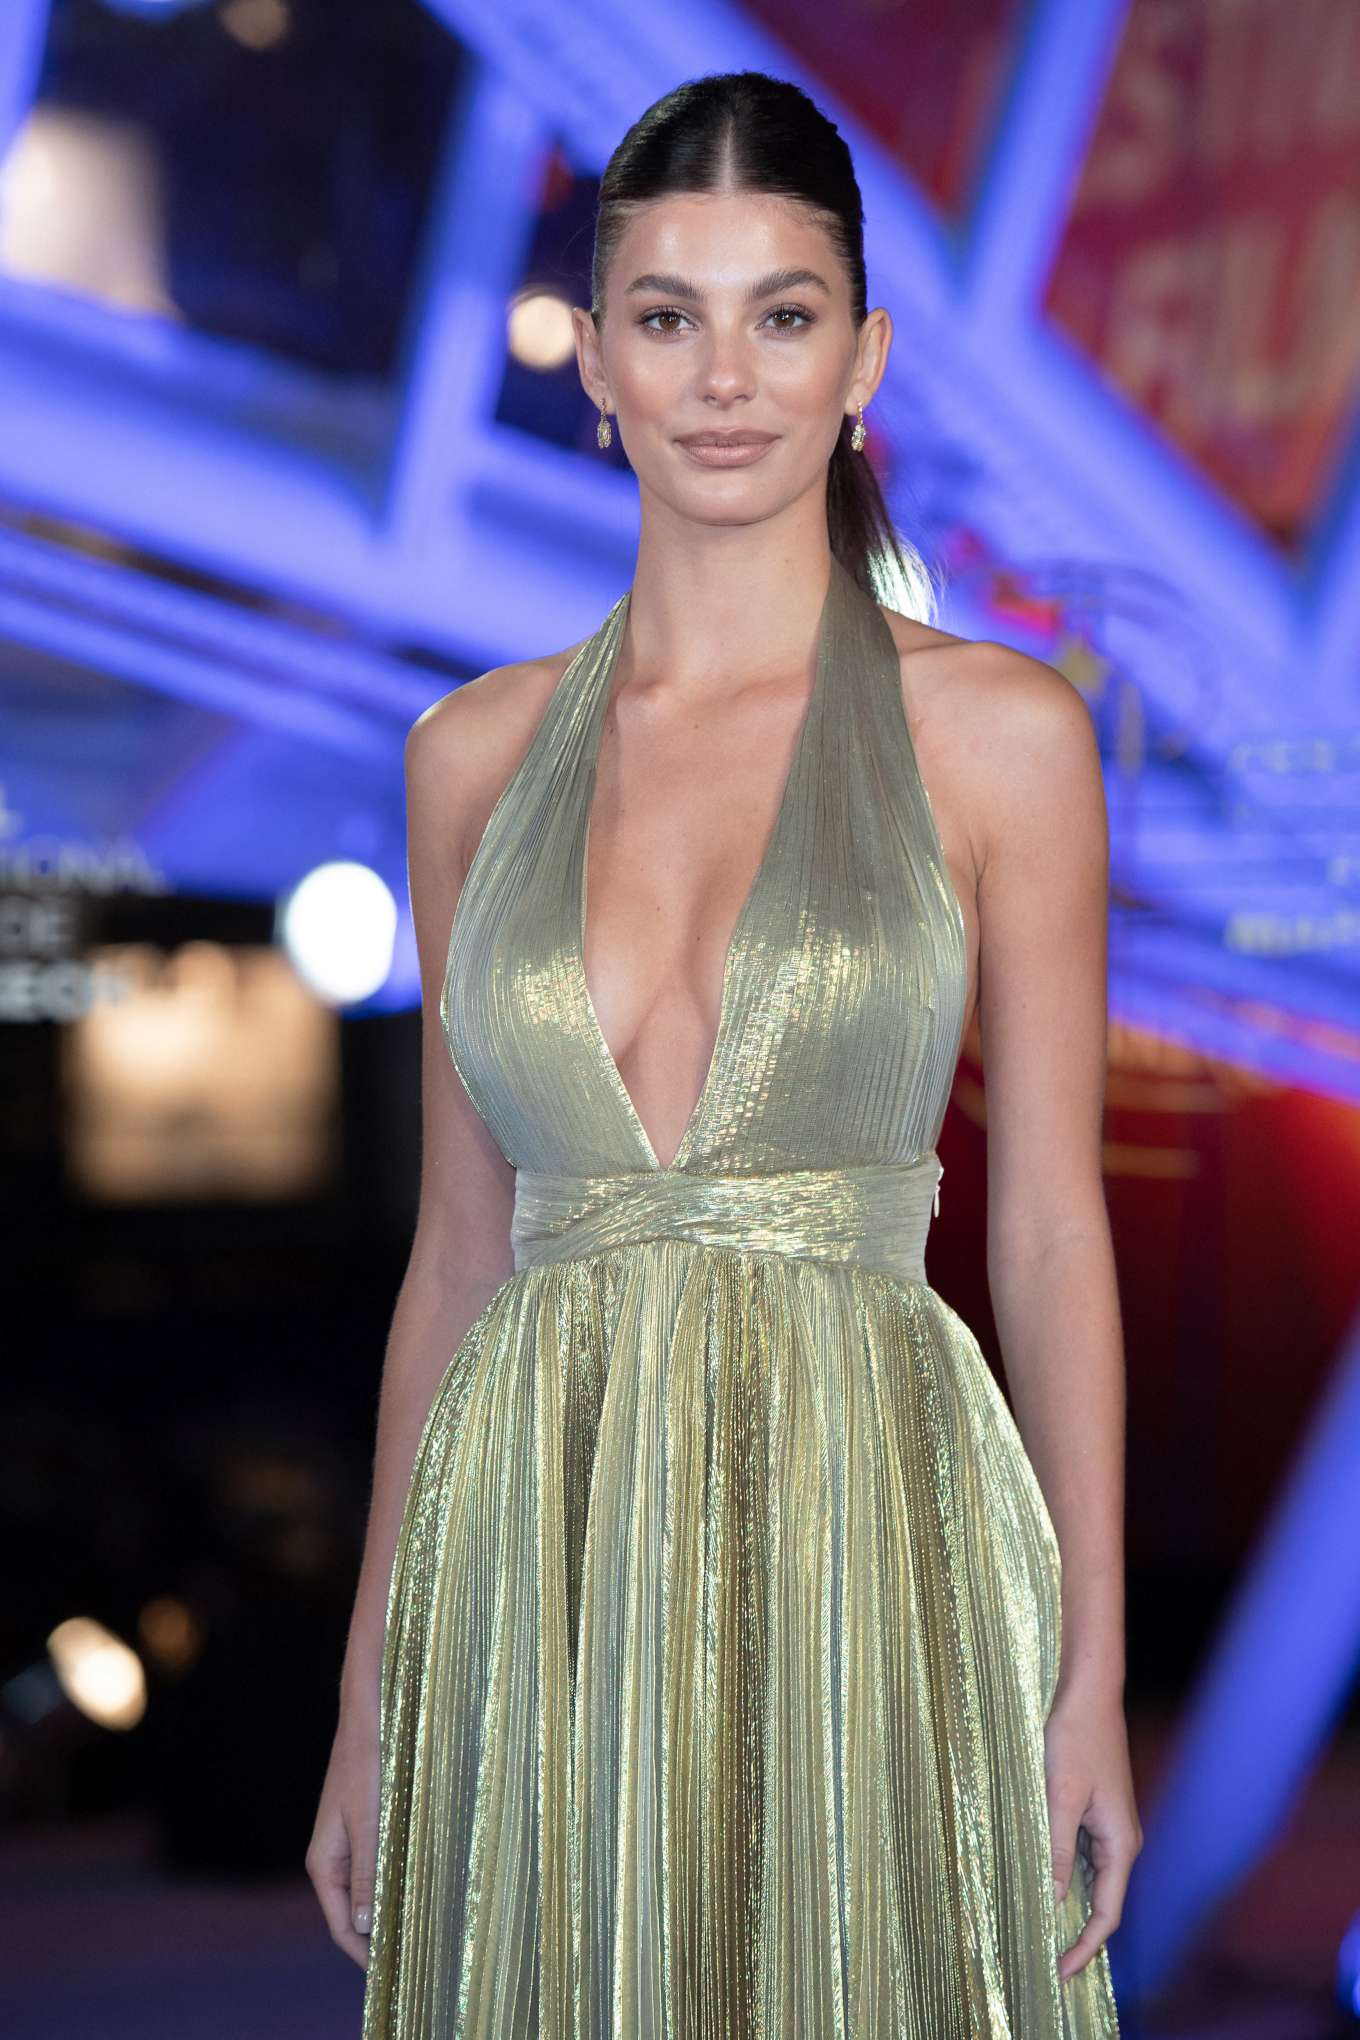 Camila Morrone - Tribute to Australian Cinema - 18th Marrakech Film Festival